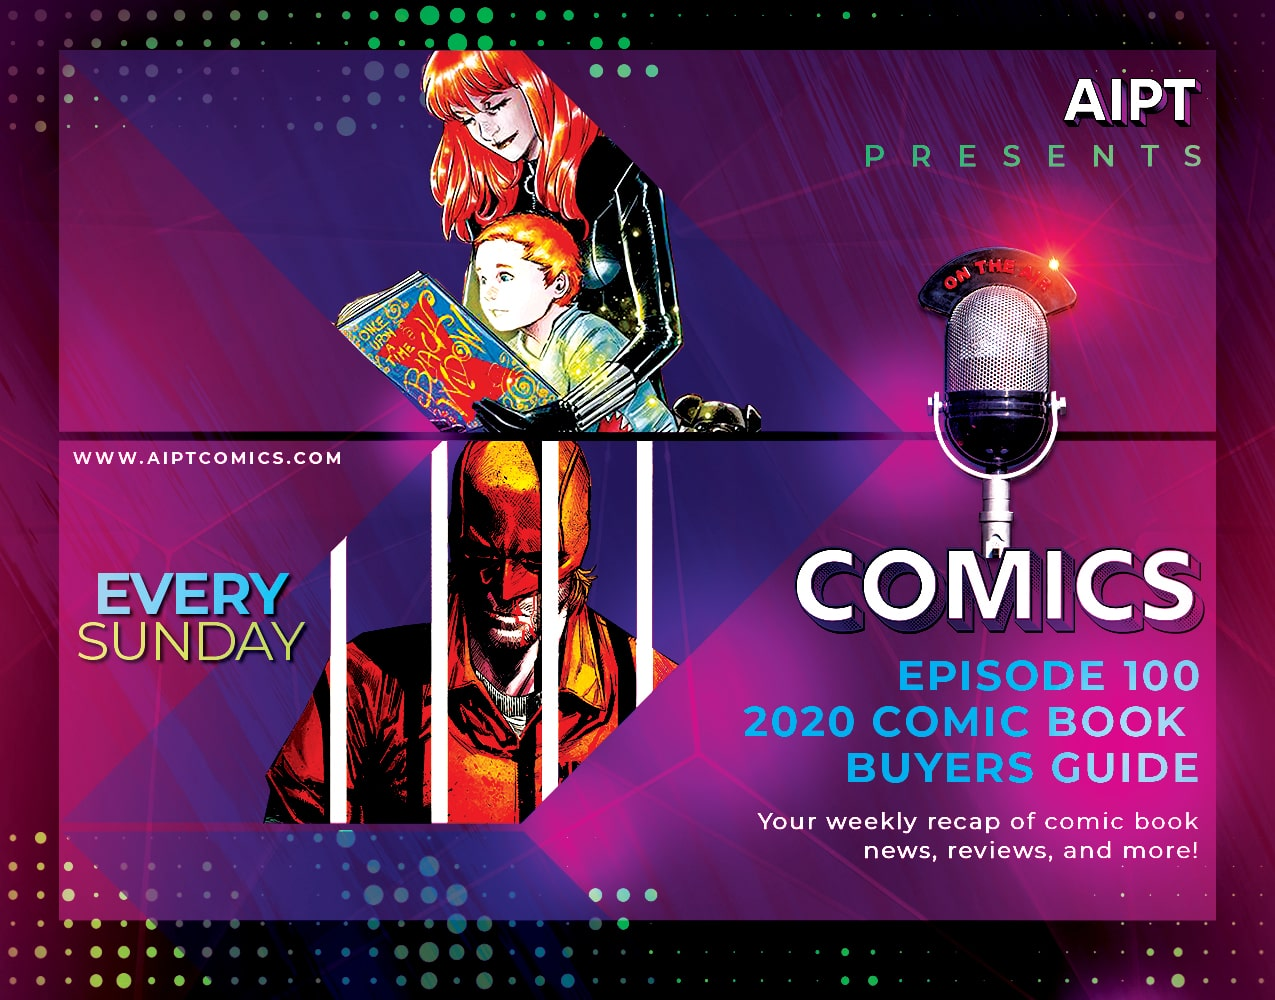 AIPT Comics Podcast Episode 100: 2020 comic book buyers guide